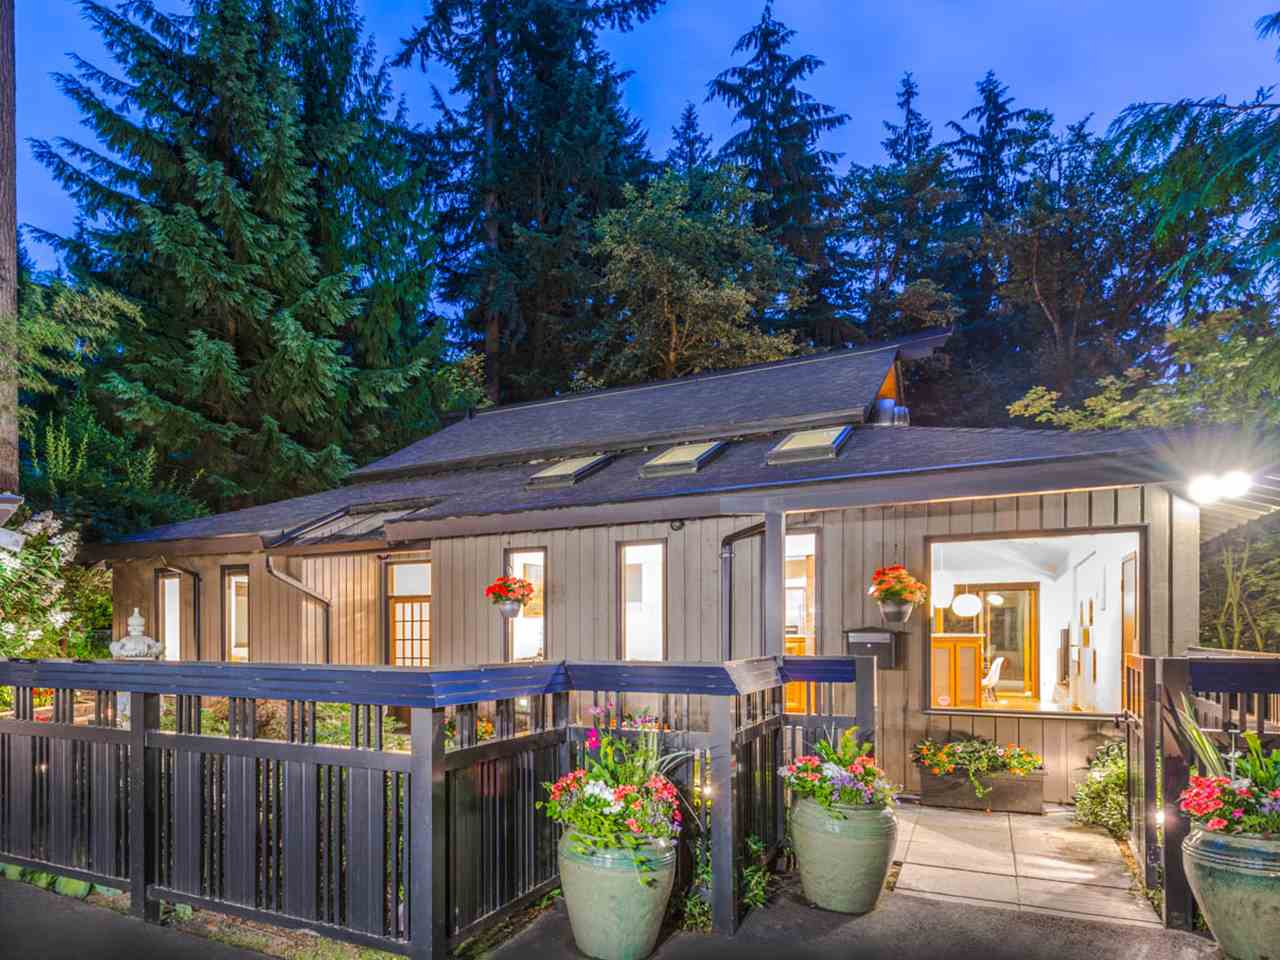 329 CARTELIER ROAD, North Vancouver, BC V7N 3B6